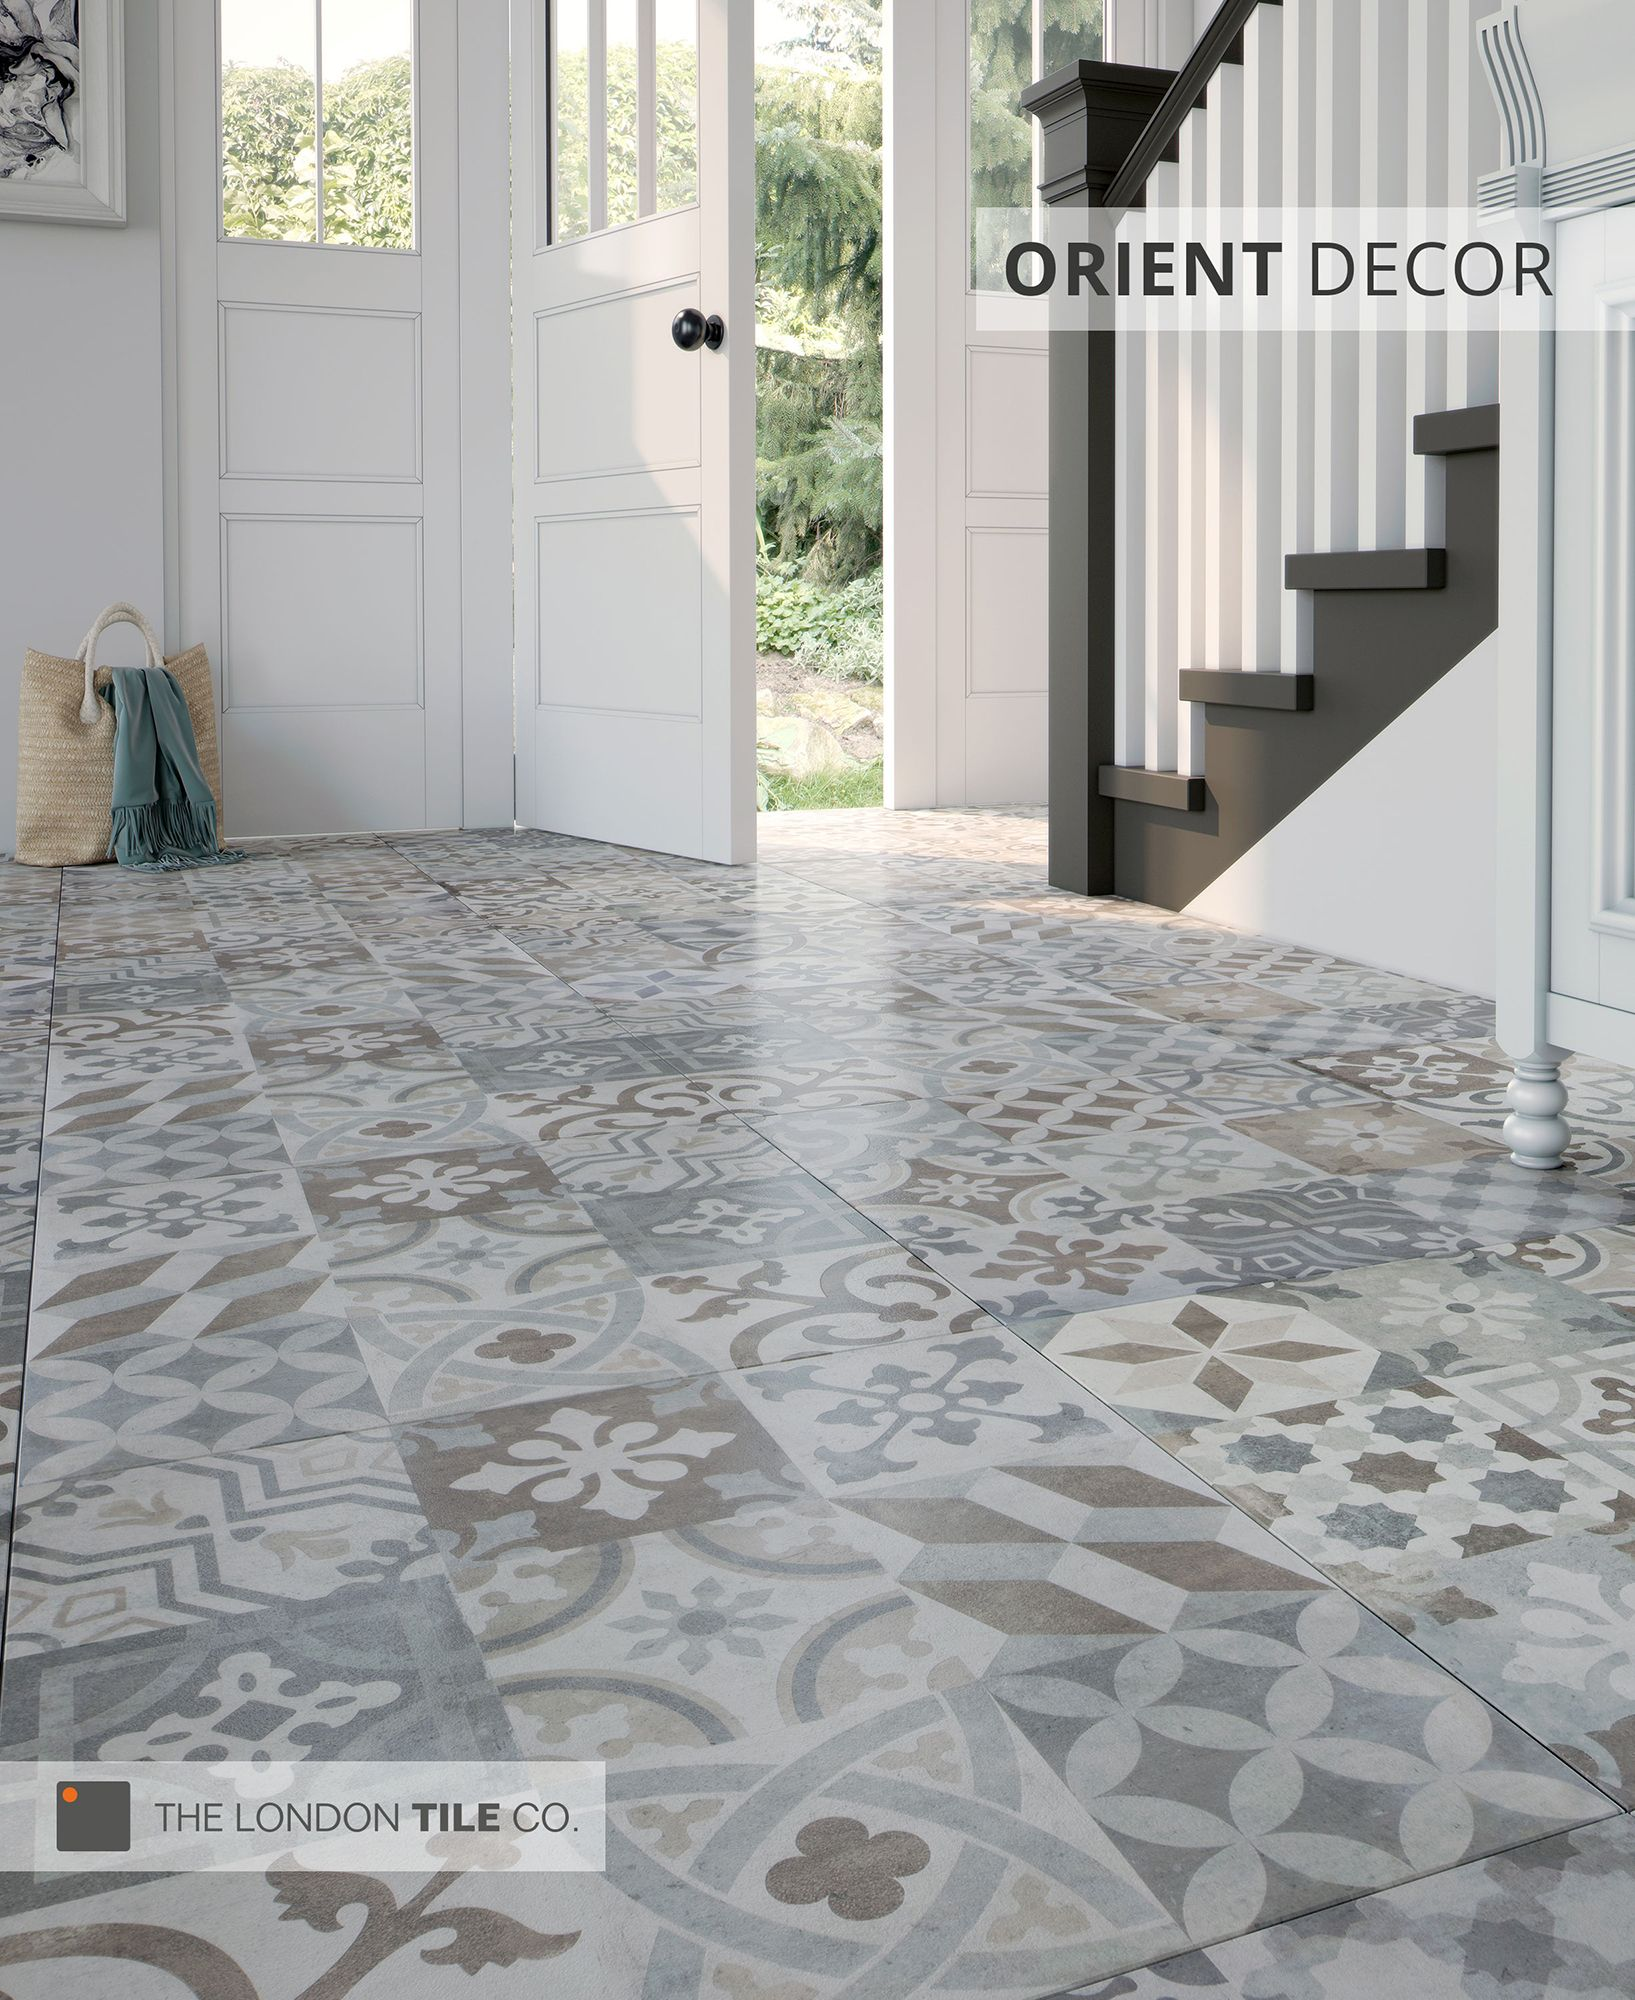 The orient range of patterned floor tiles are both stylish and hard porch dailygadgetfo Choice Image